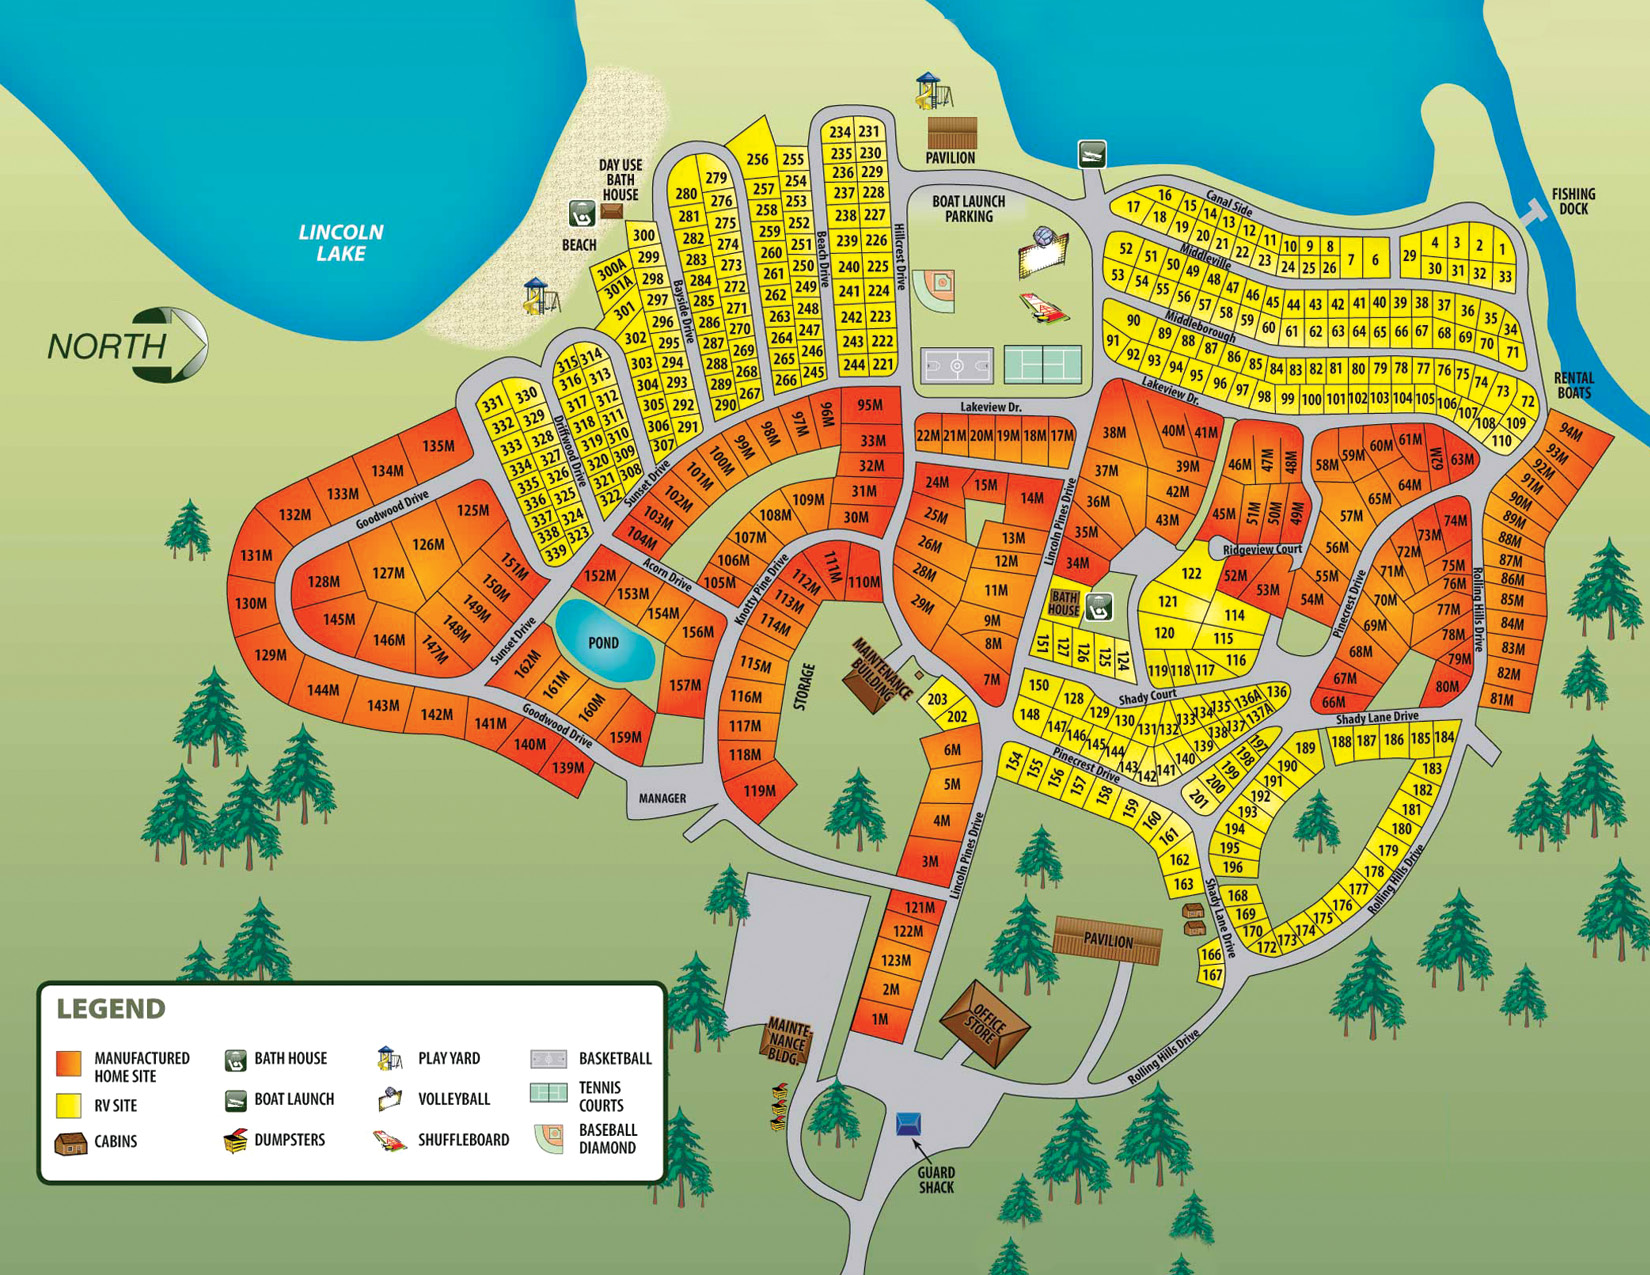 lincoln pines resort campground map